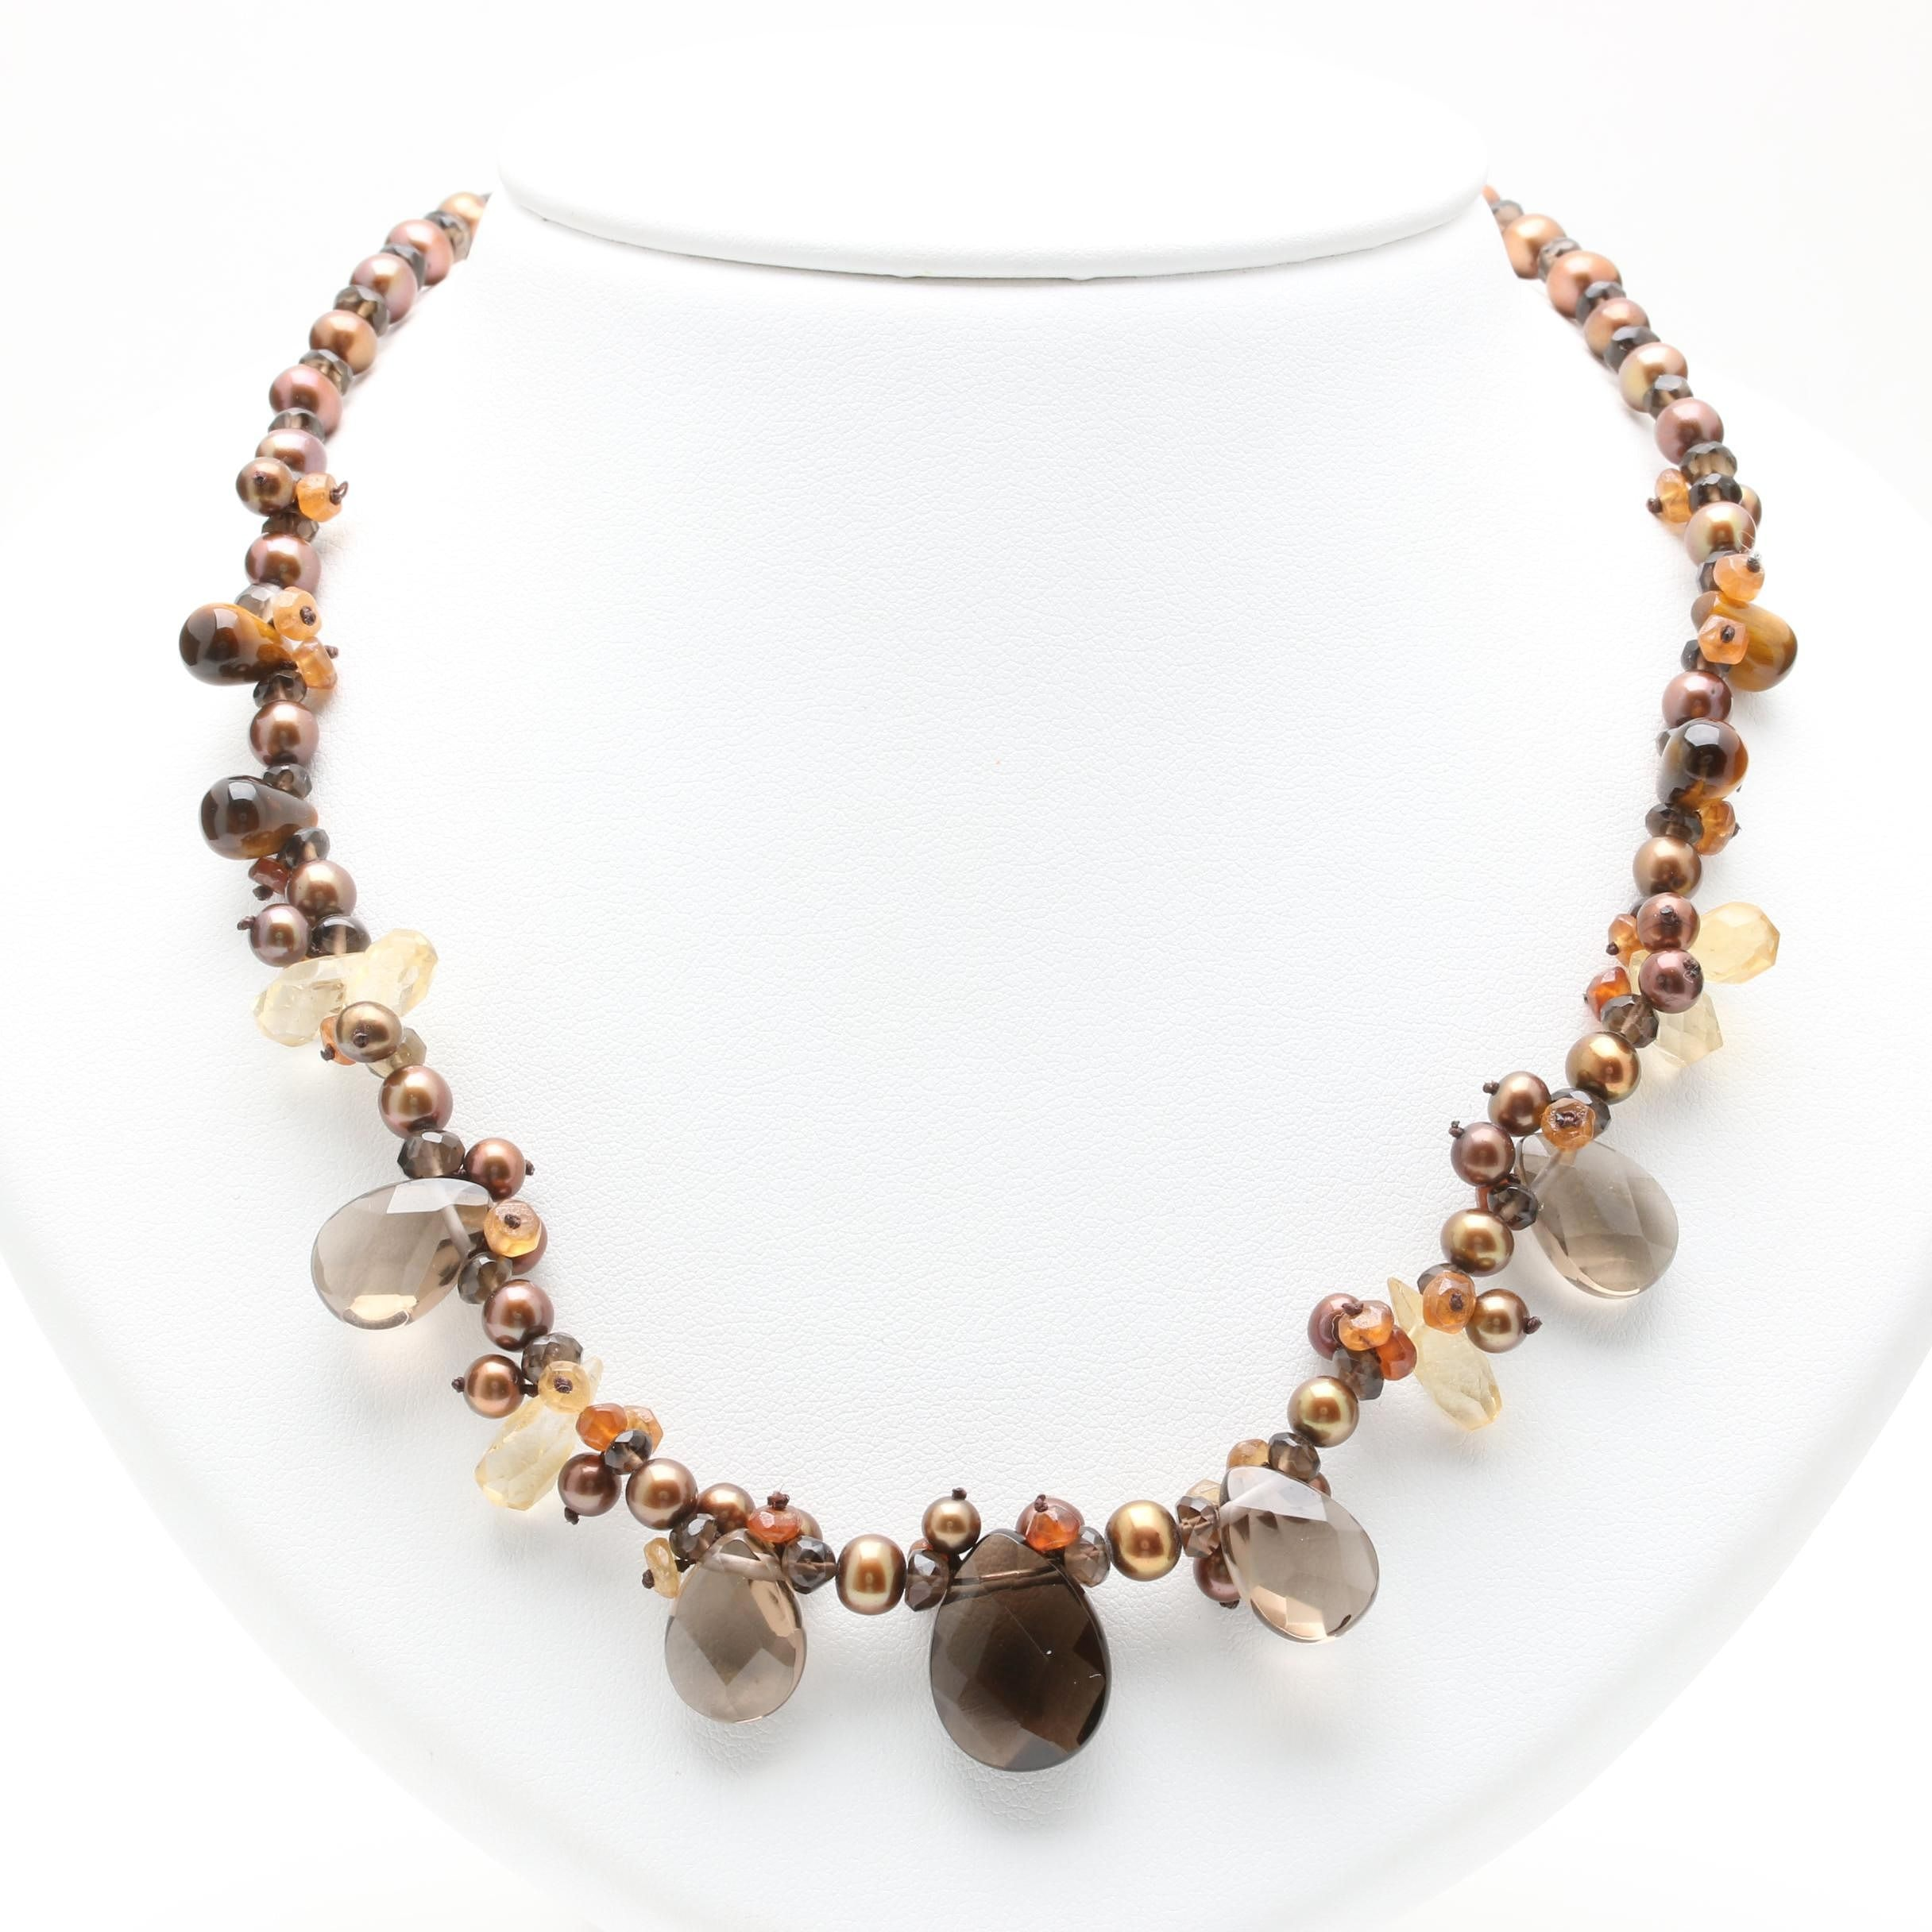 14K Yellow Gold Smoky Quartz, Pearl, Citrine and Tiger's Eye Necklace